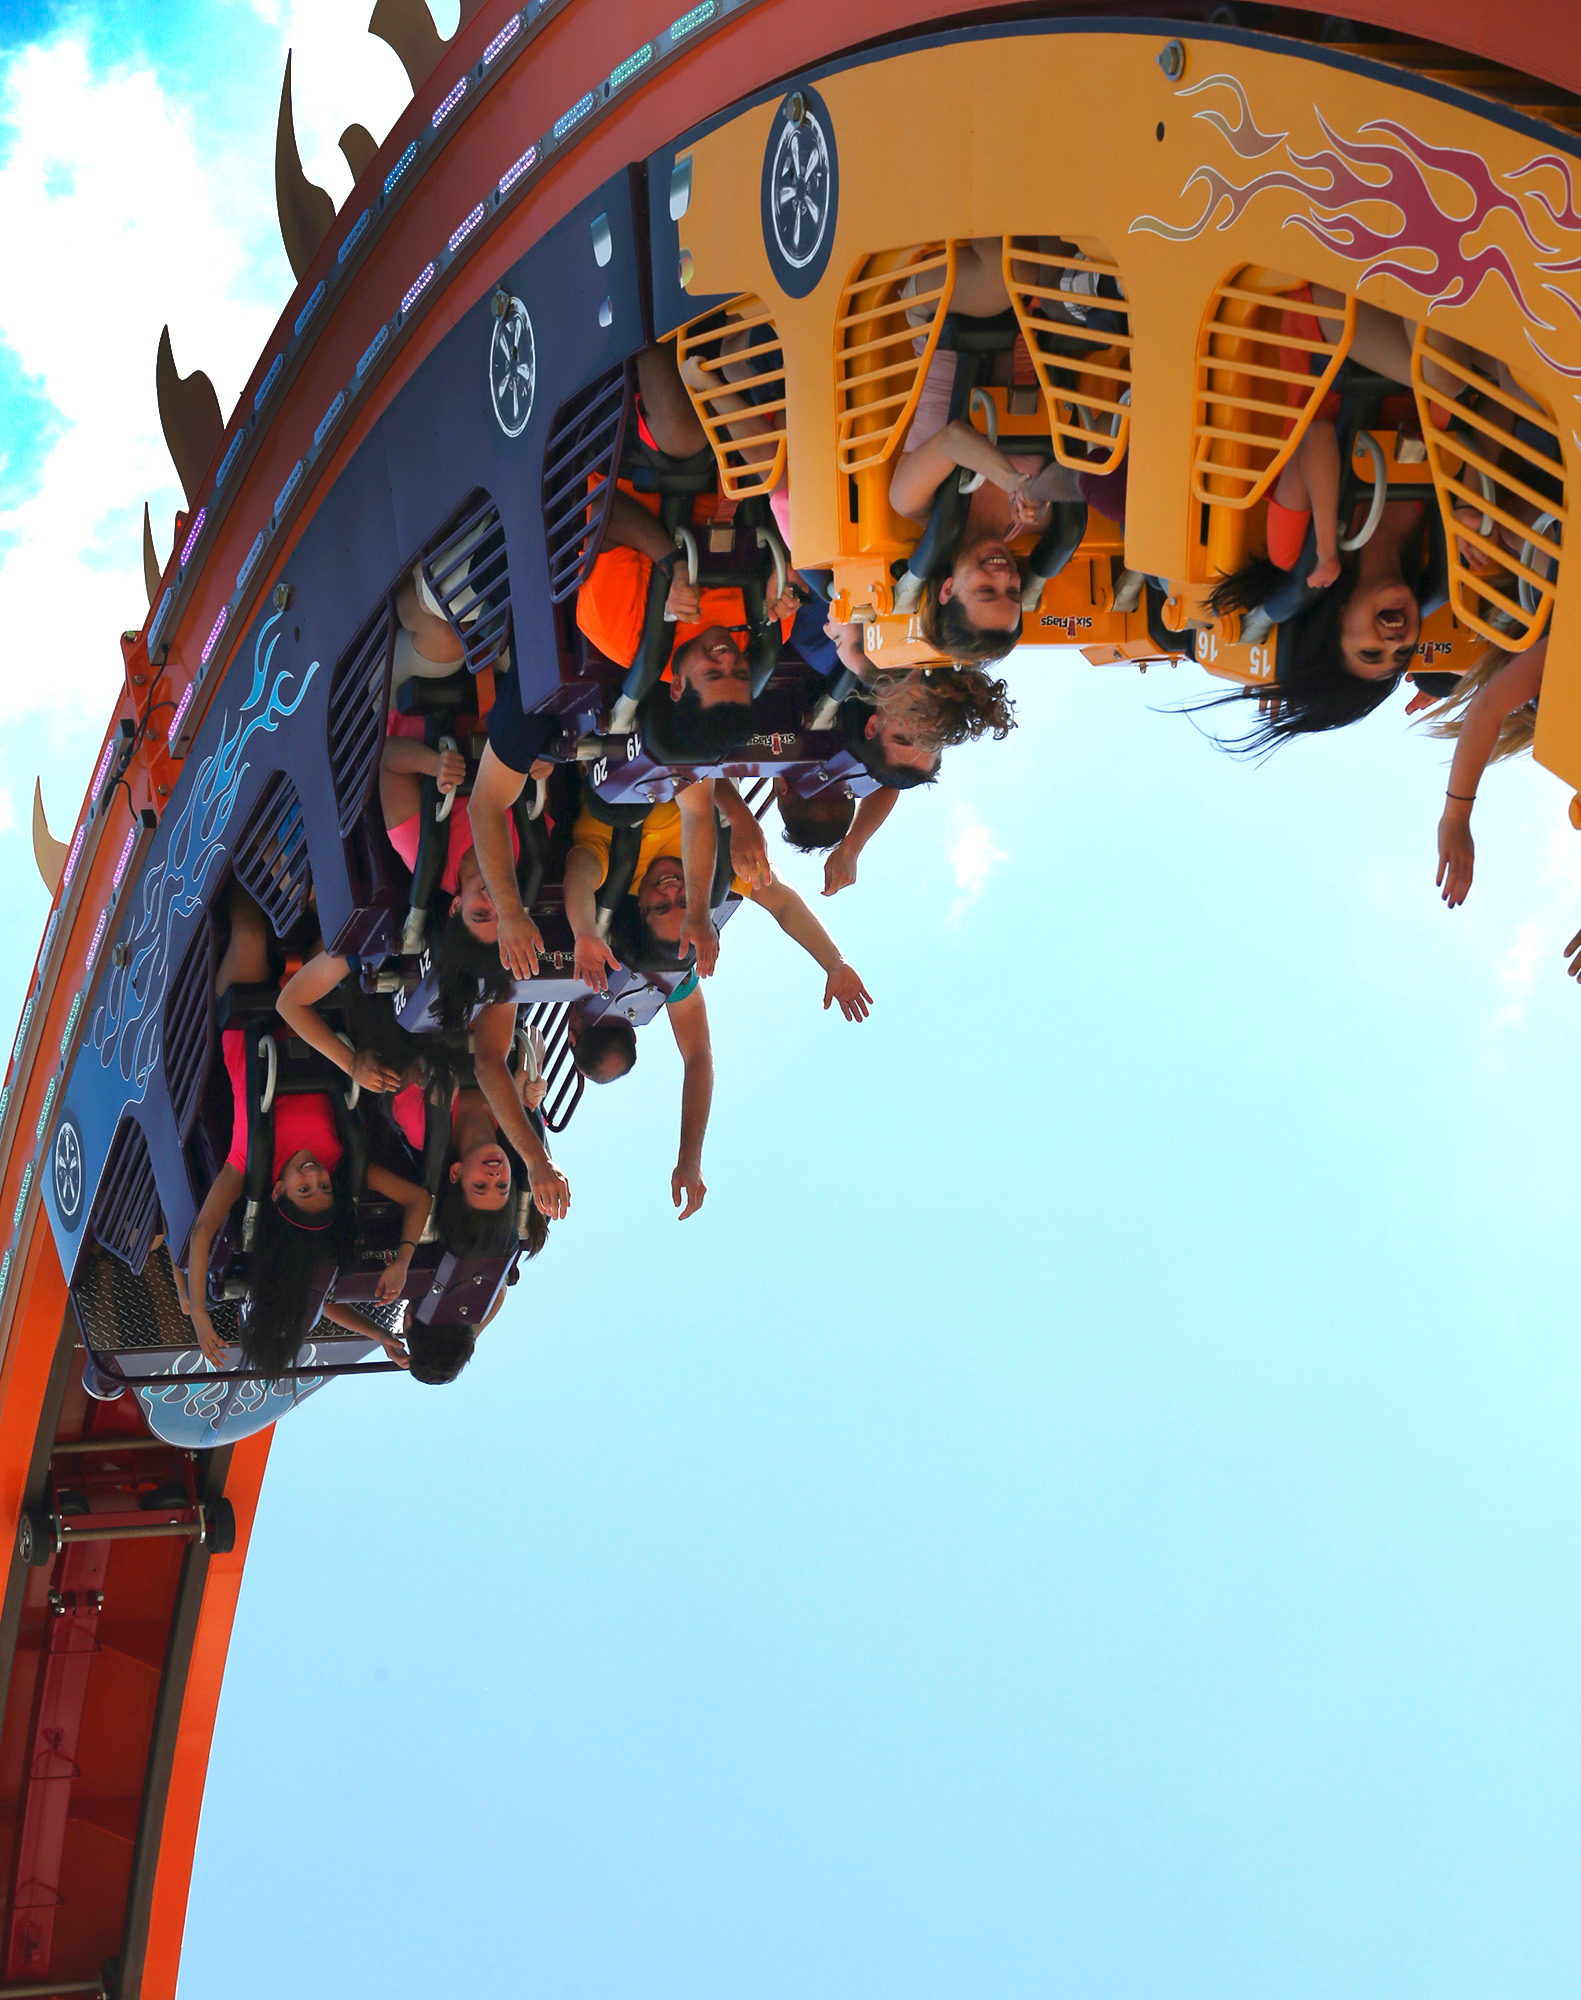 The looping sensation, Fireball, is now open at Six Flags Fiesta Texas in San Antonio. Guests are rocketed forward-and-backward through 360 degree revolutions and a feeling of weightlessness during their thrilling journey. (Photo: Business Wire)